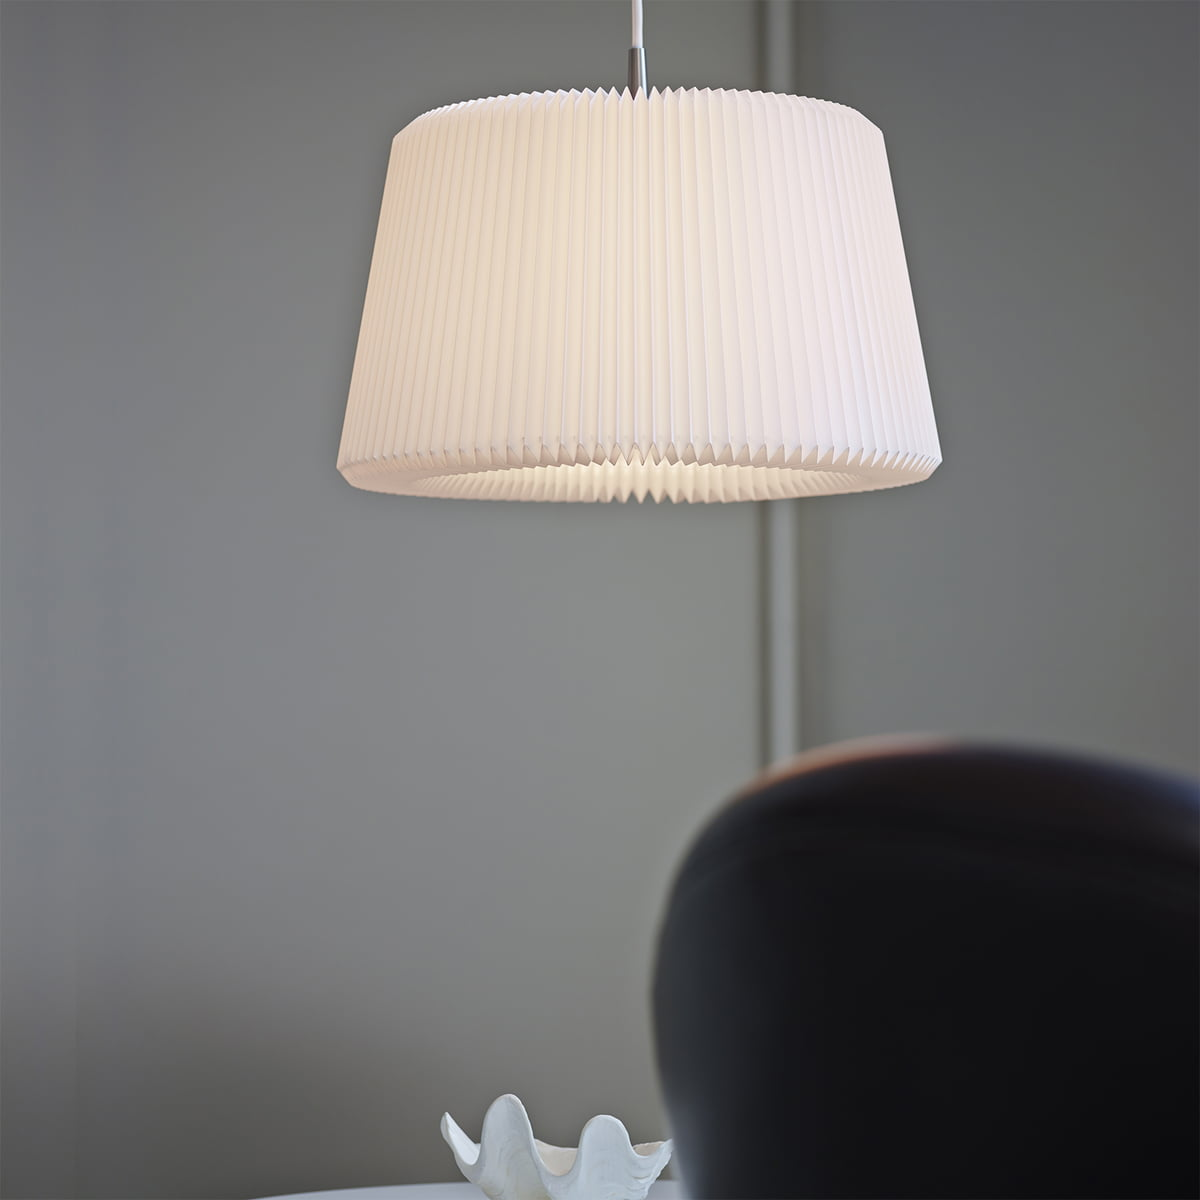 Soft lighting from Le Klint & Buy the Snowdrop Pendant Lamp from Le Klint azcodes.com